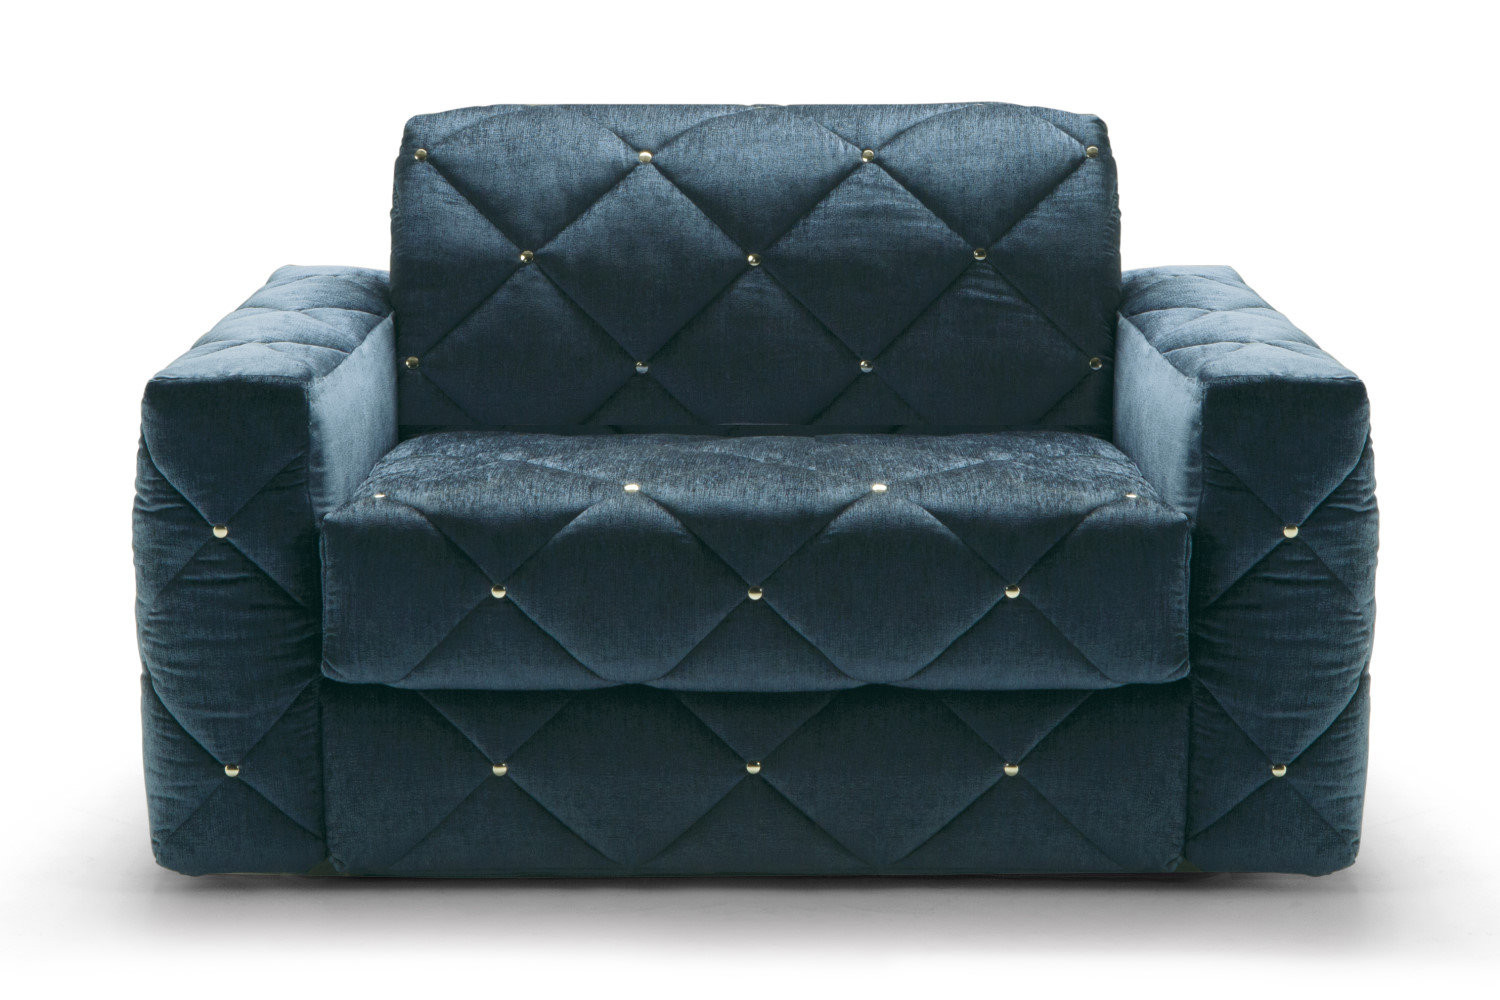 fauteuil de salon design large assise douglas. Black Bedroom Furniture Sets. Home Design Ideas